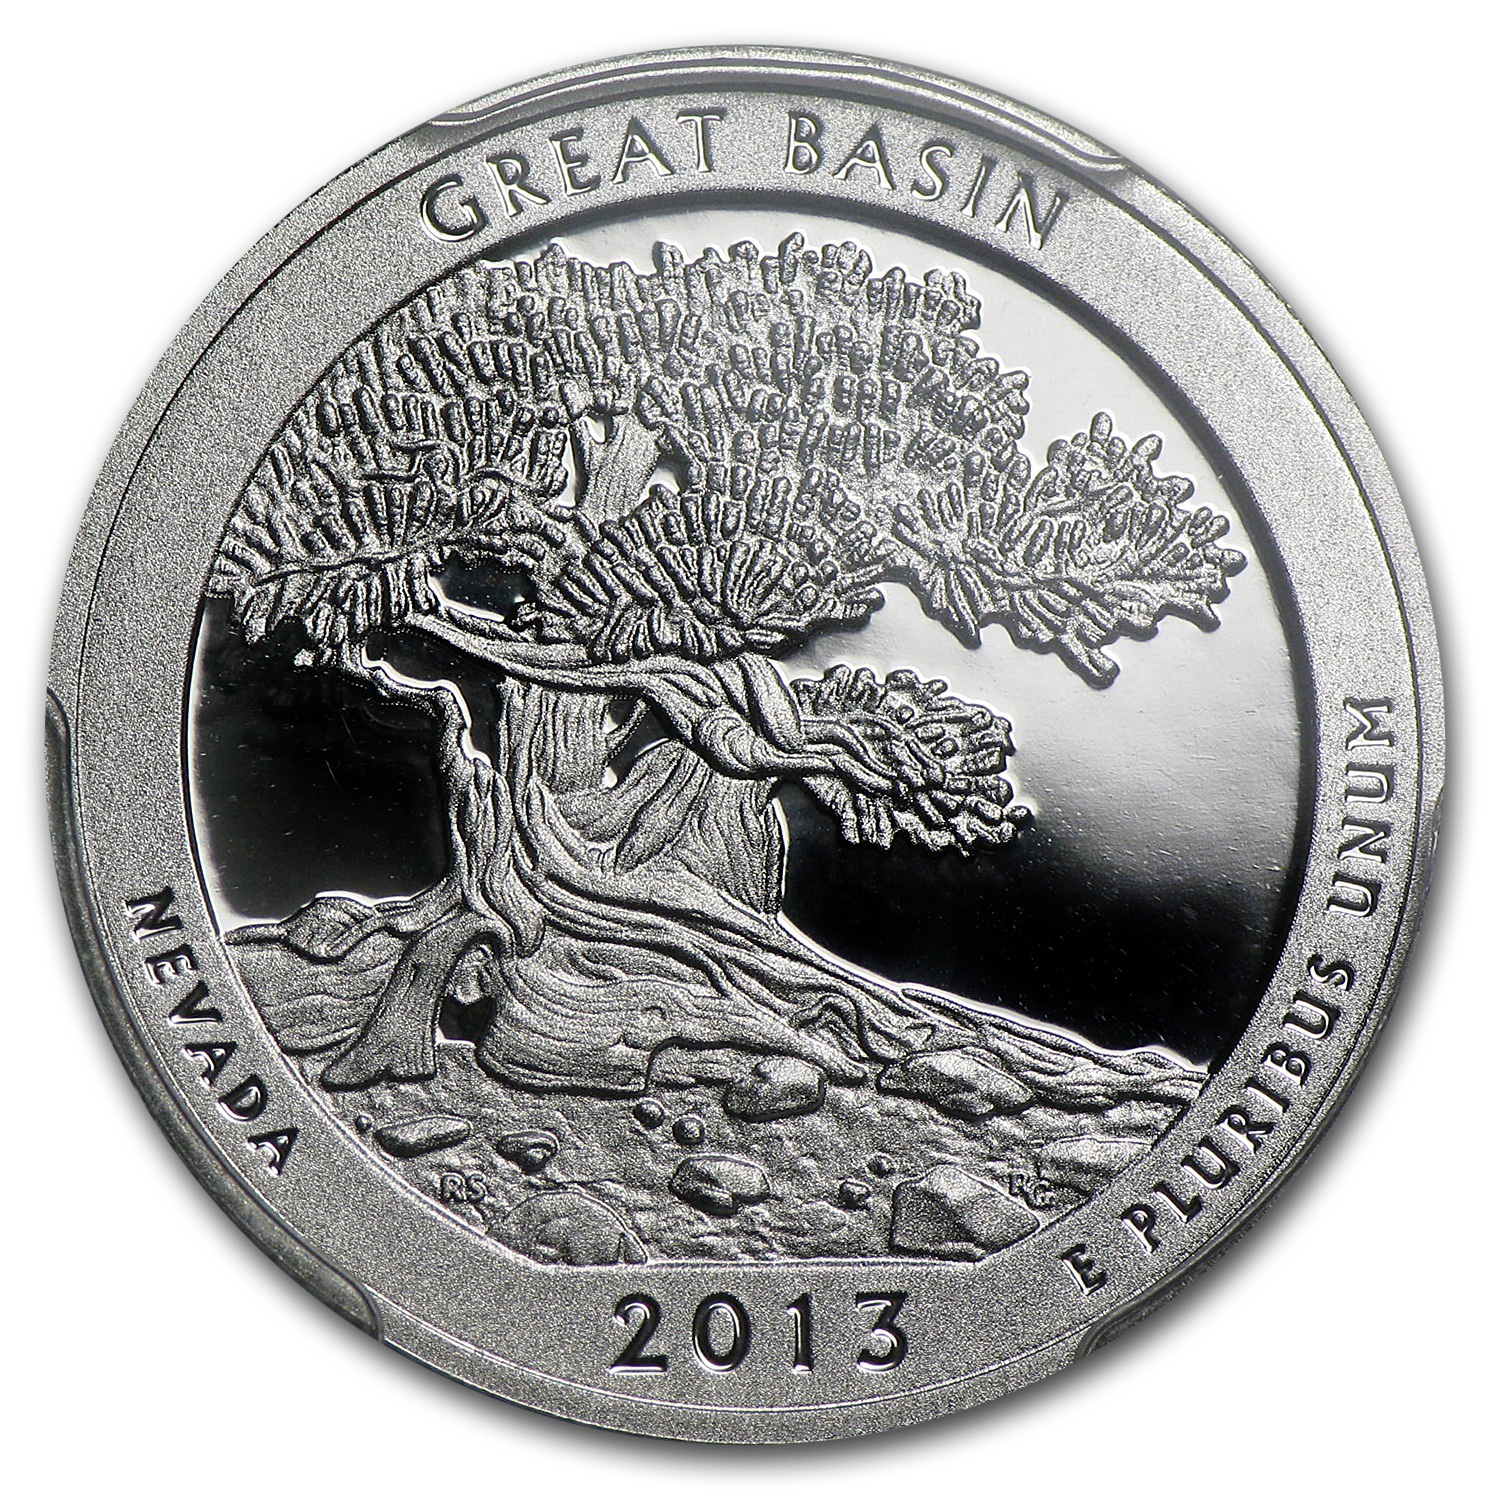 2013-S Silver Proof Quarter ATB Great Basin PR-70 DCAM (FS)